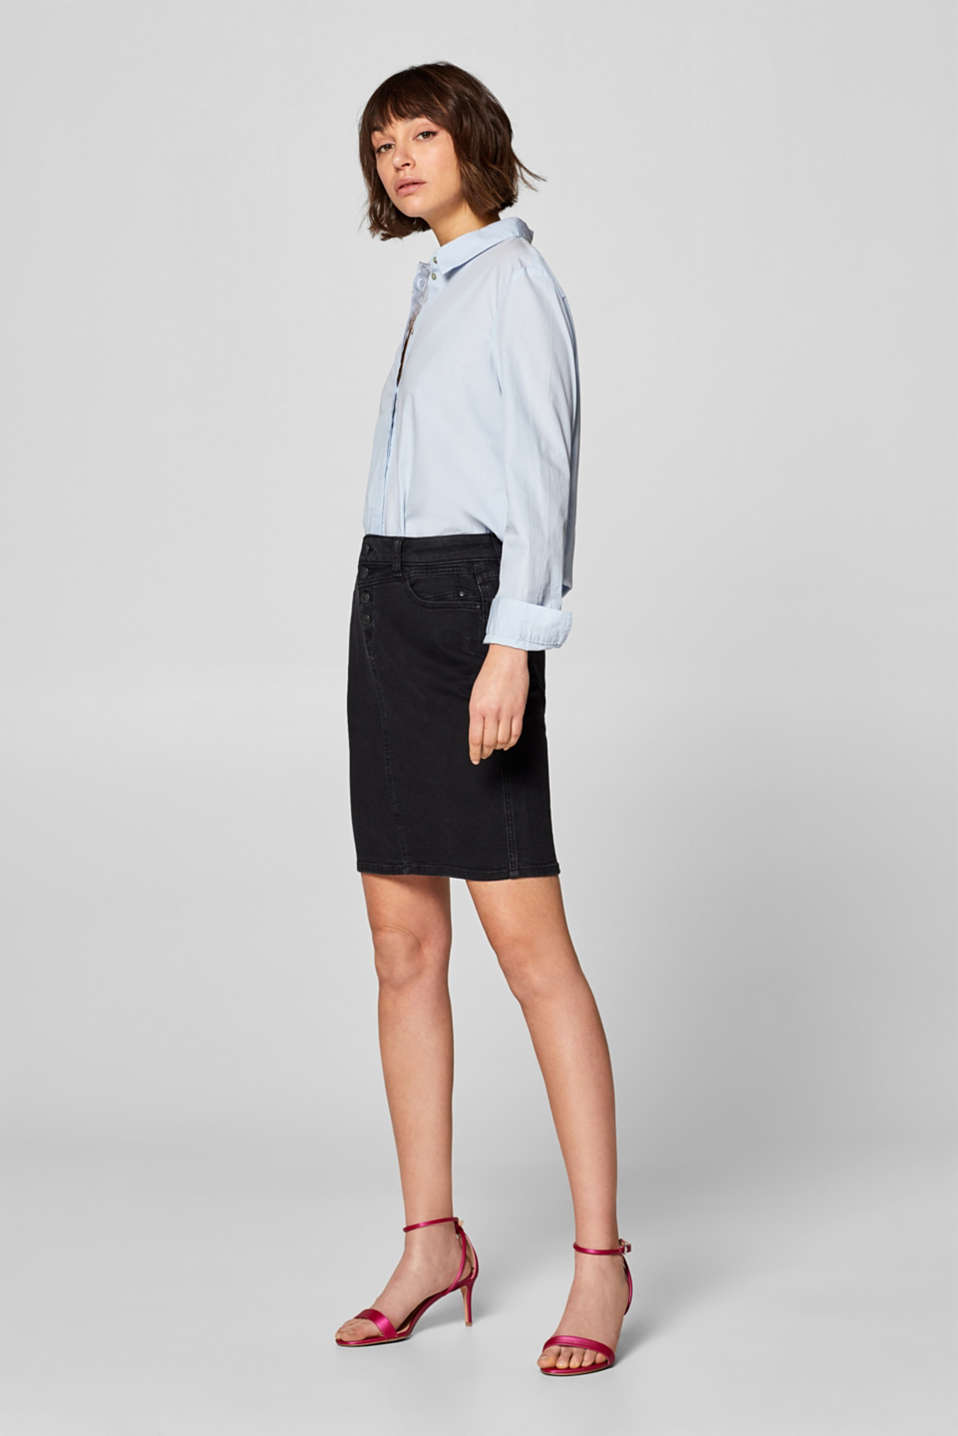 Stretch denim skirt with a button placket